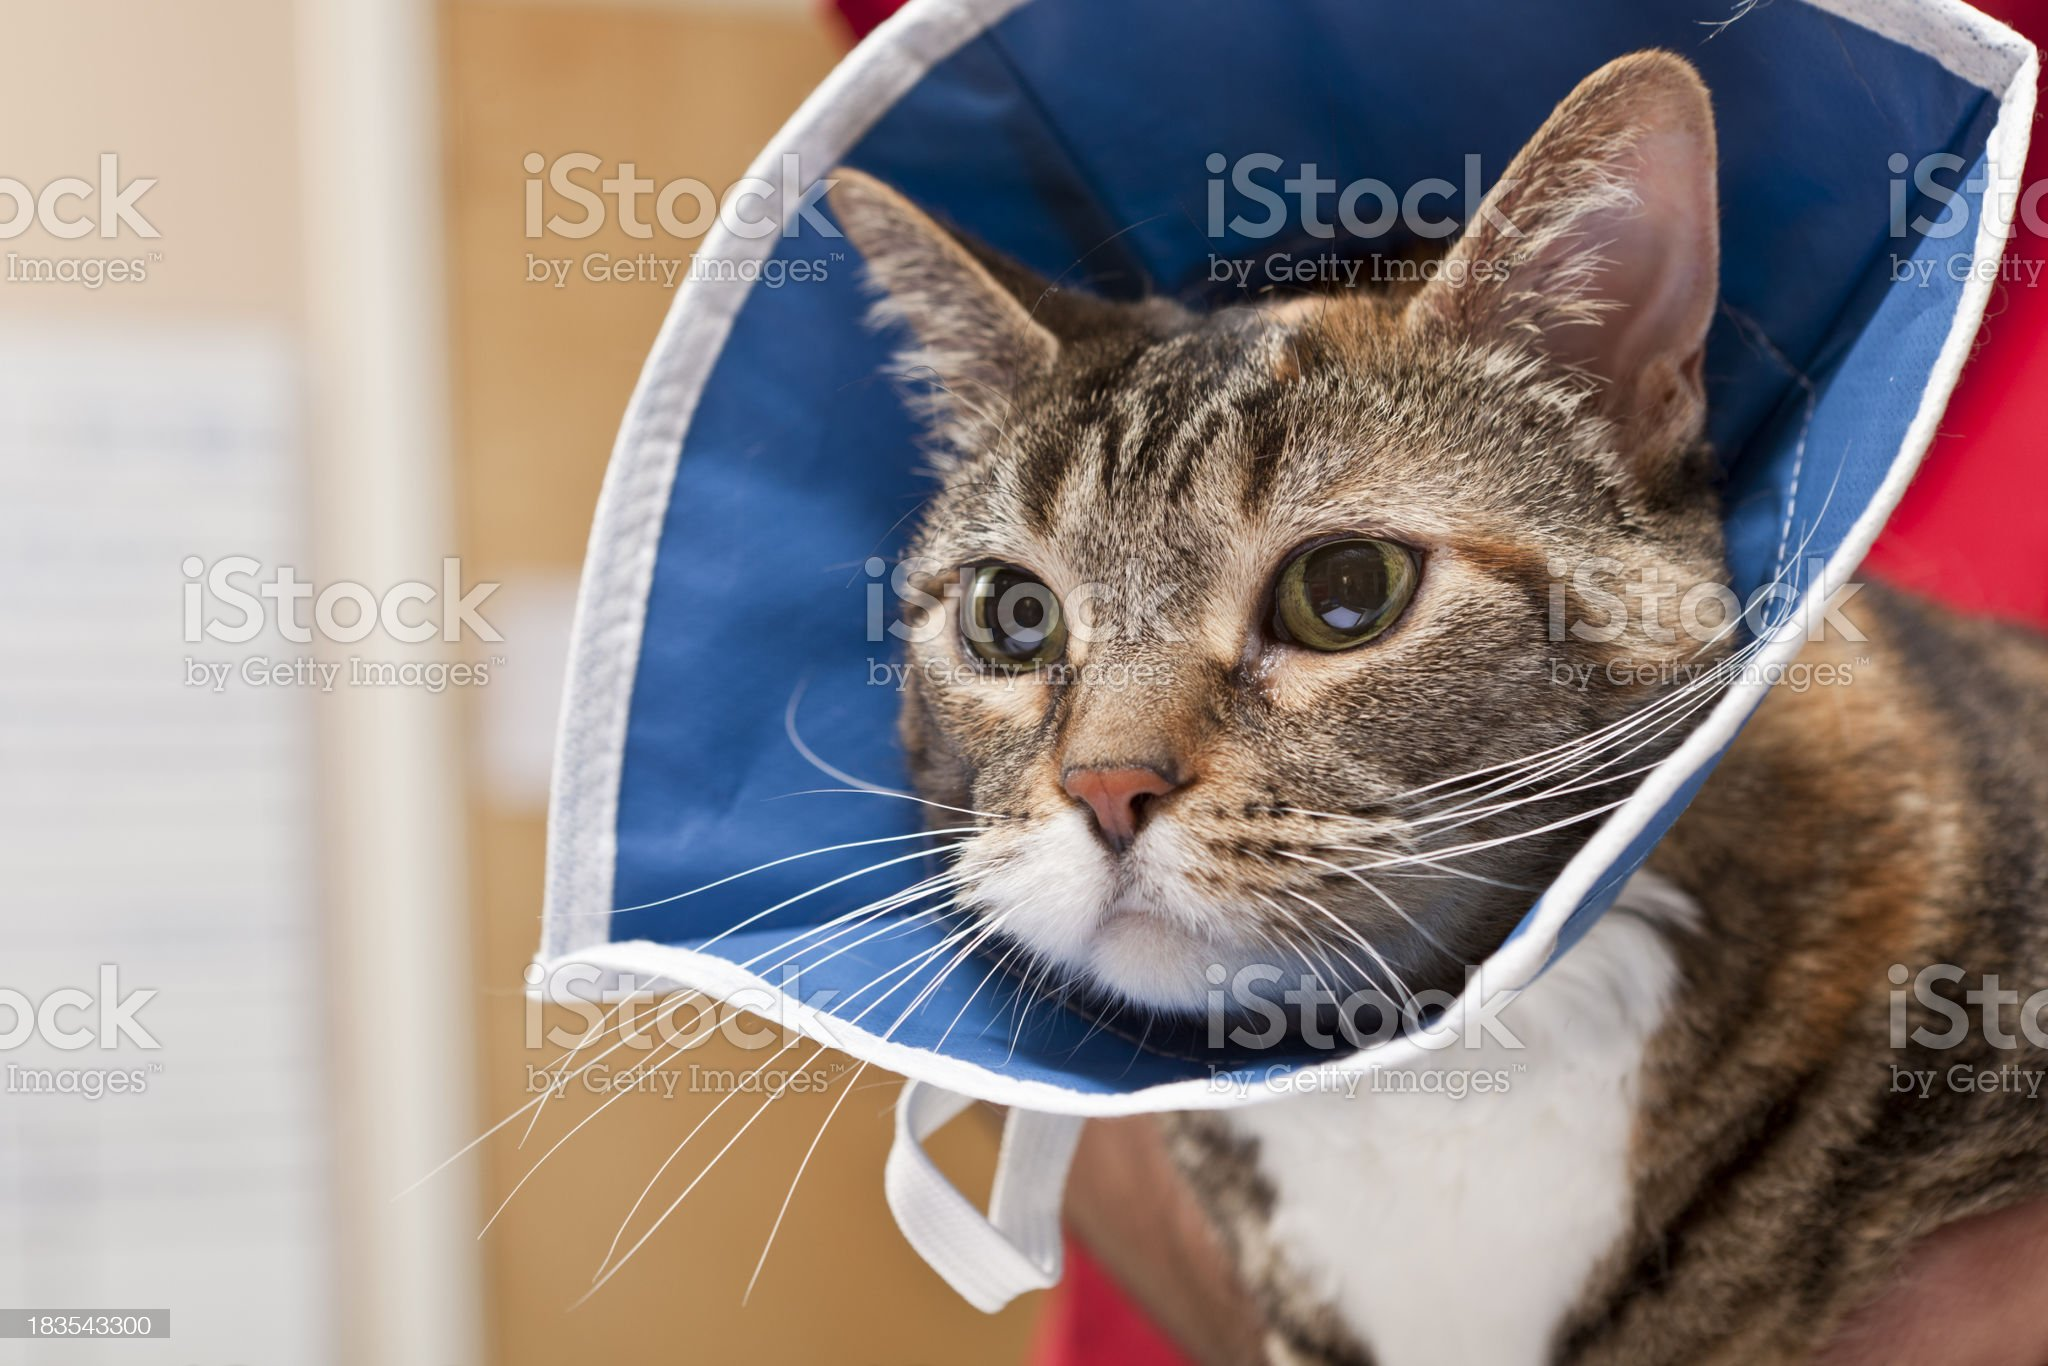 Cat Waits With Collar on After Procedure in Animal Hospital royalty-free stock photo